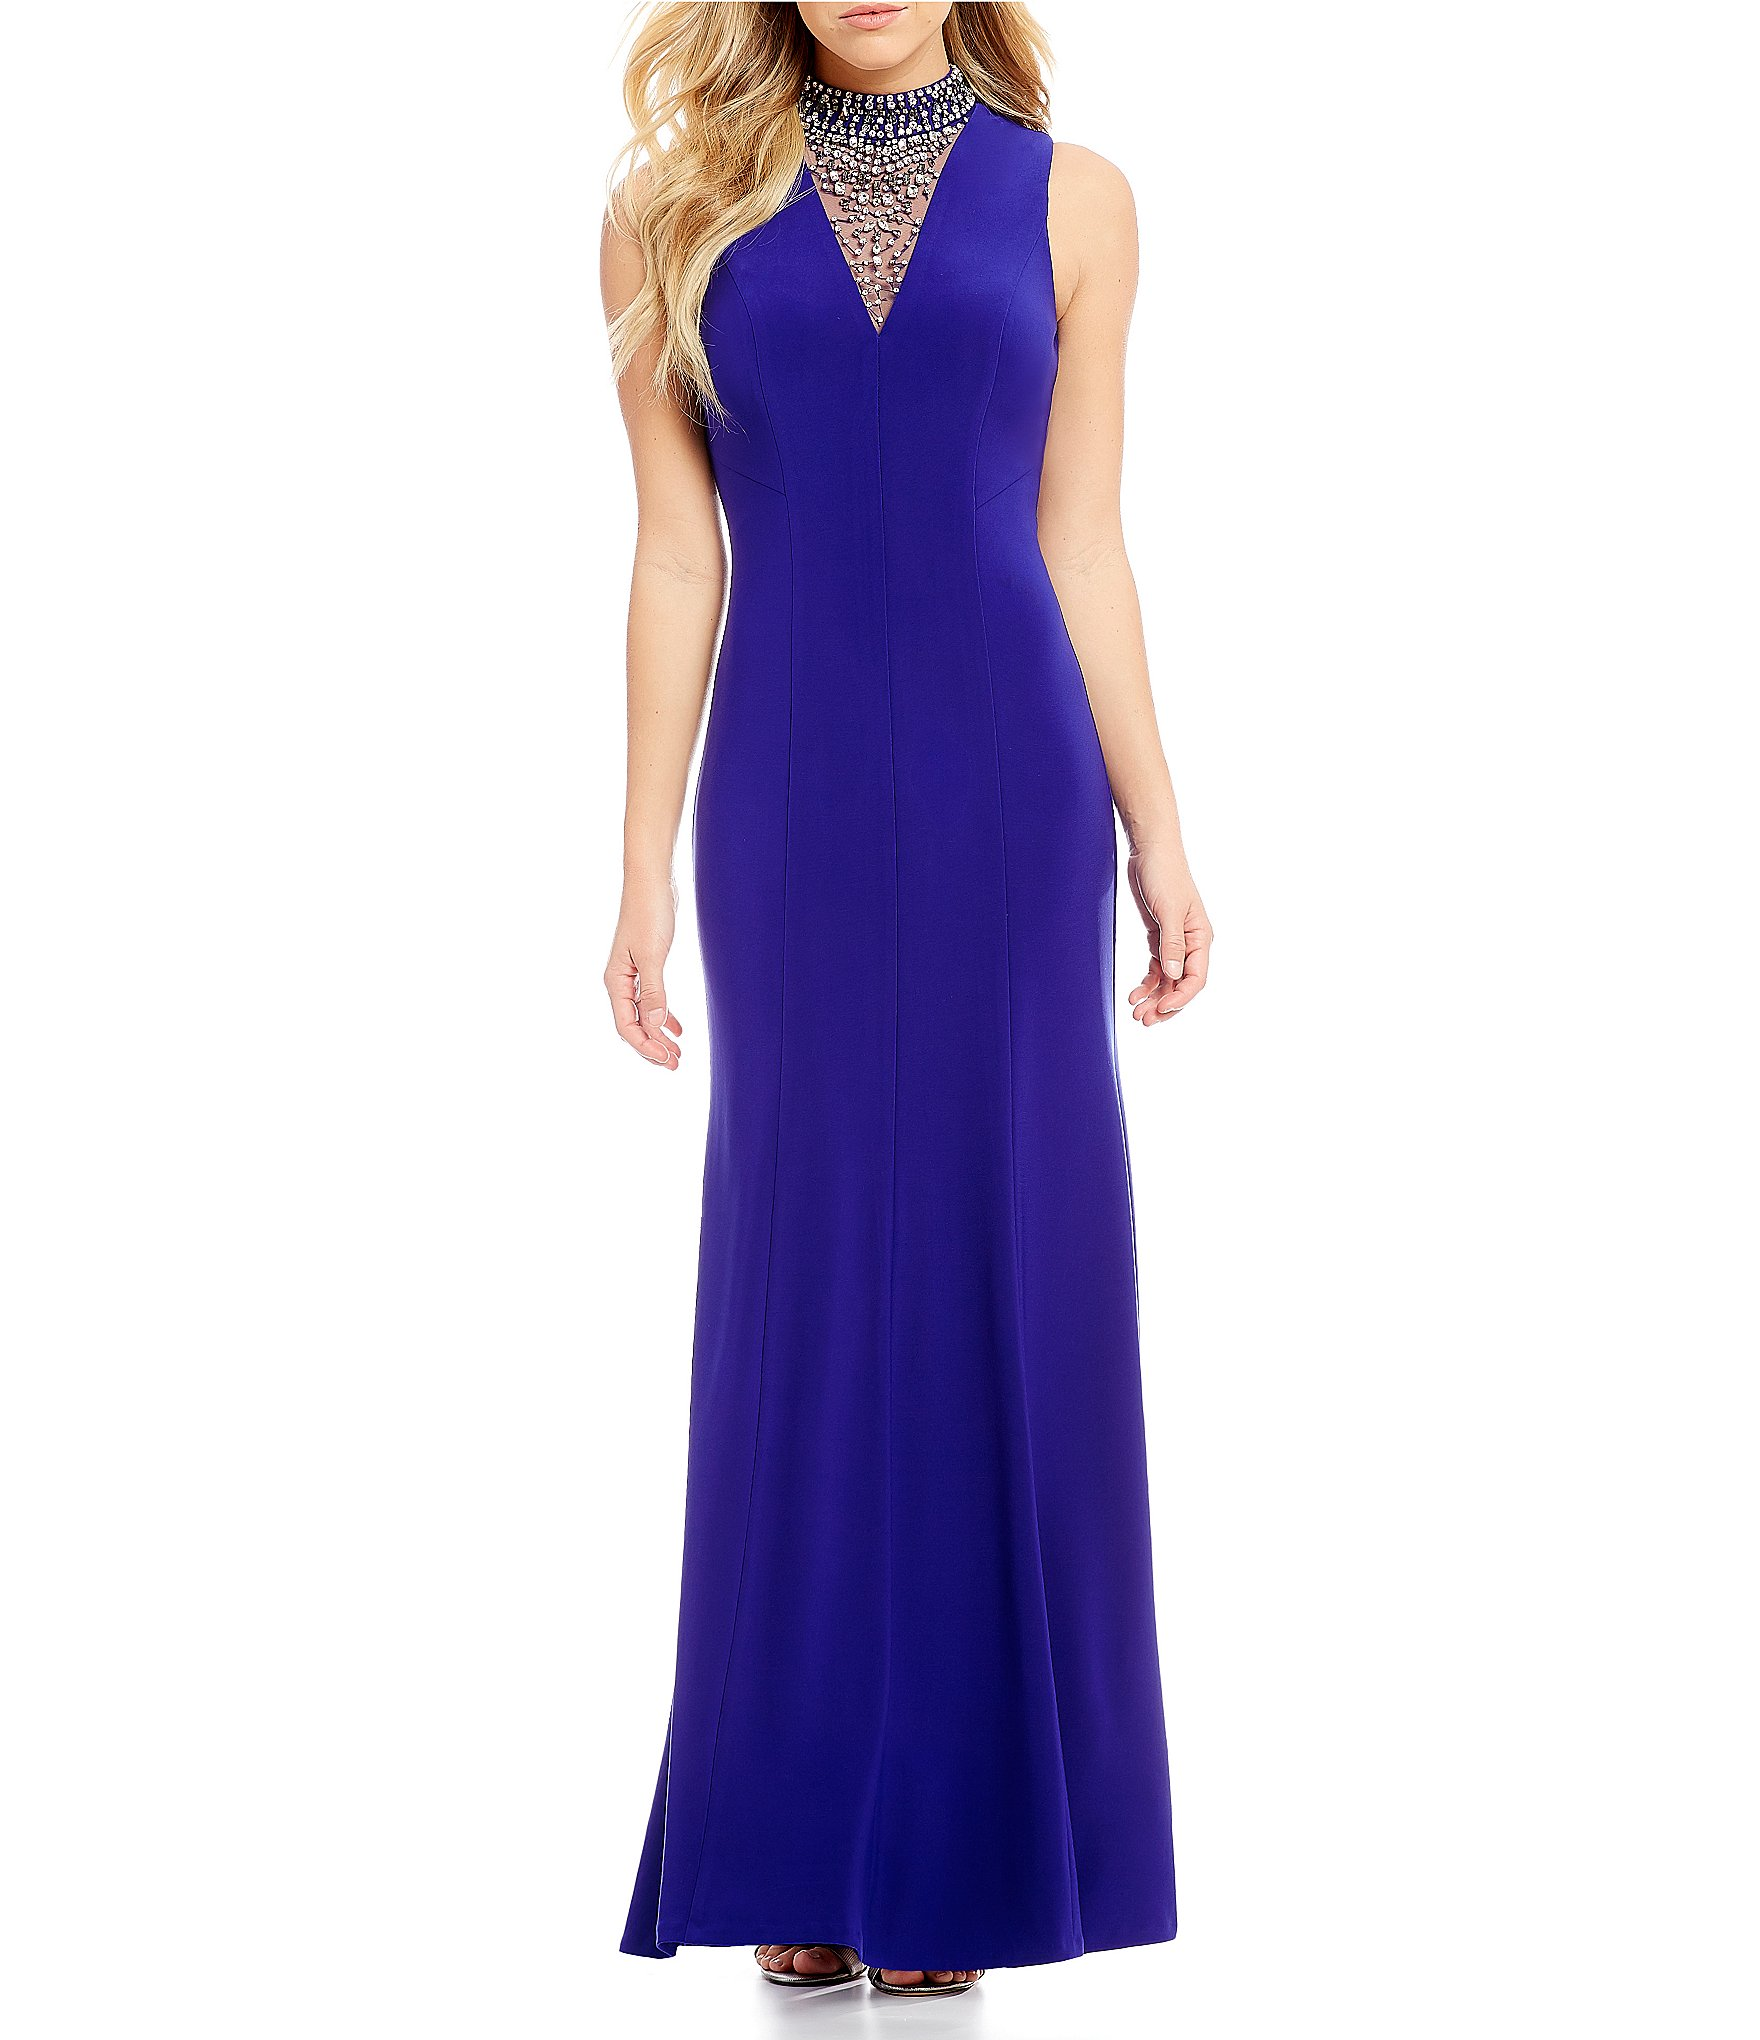 Vince Camuto Women\'s Dresses & Gowns | Dillards